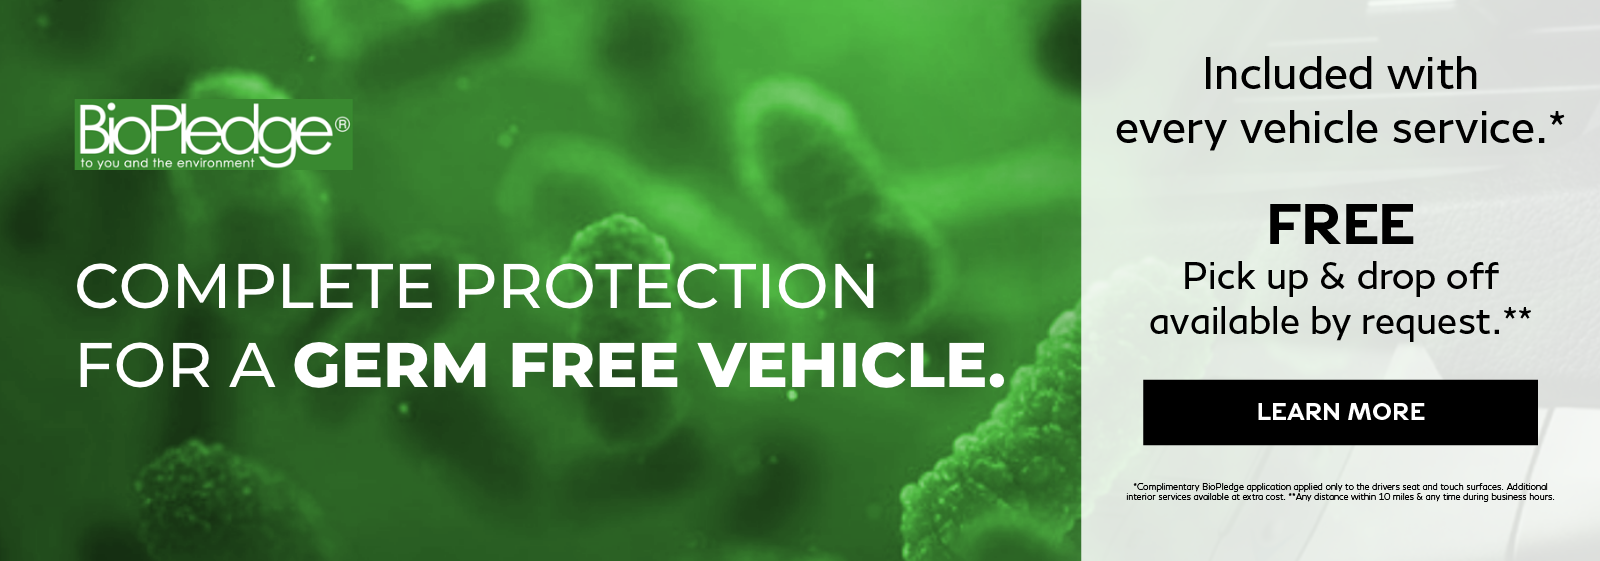 BioPledge® AntiMicrobial Protection (AMP)™ included with every vehicle service. Free pick up and drop off available by request. Restrictions apply. Click to learn more.